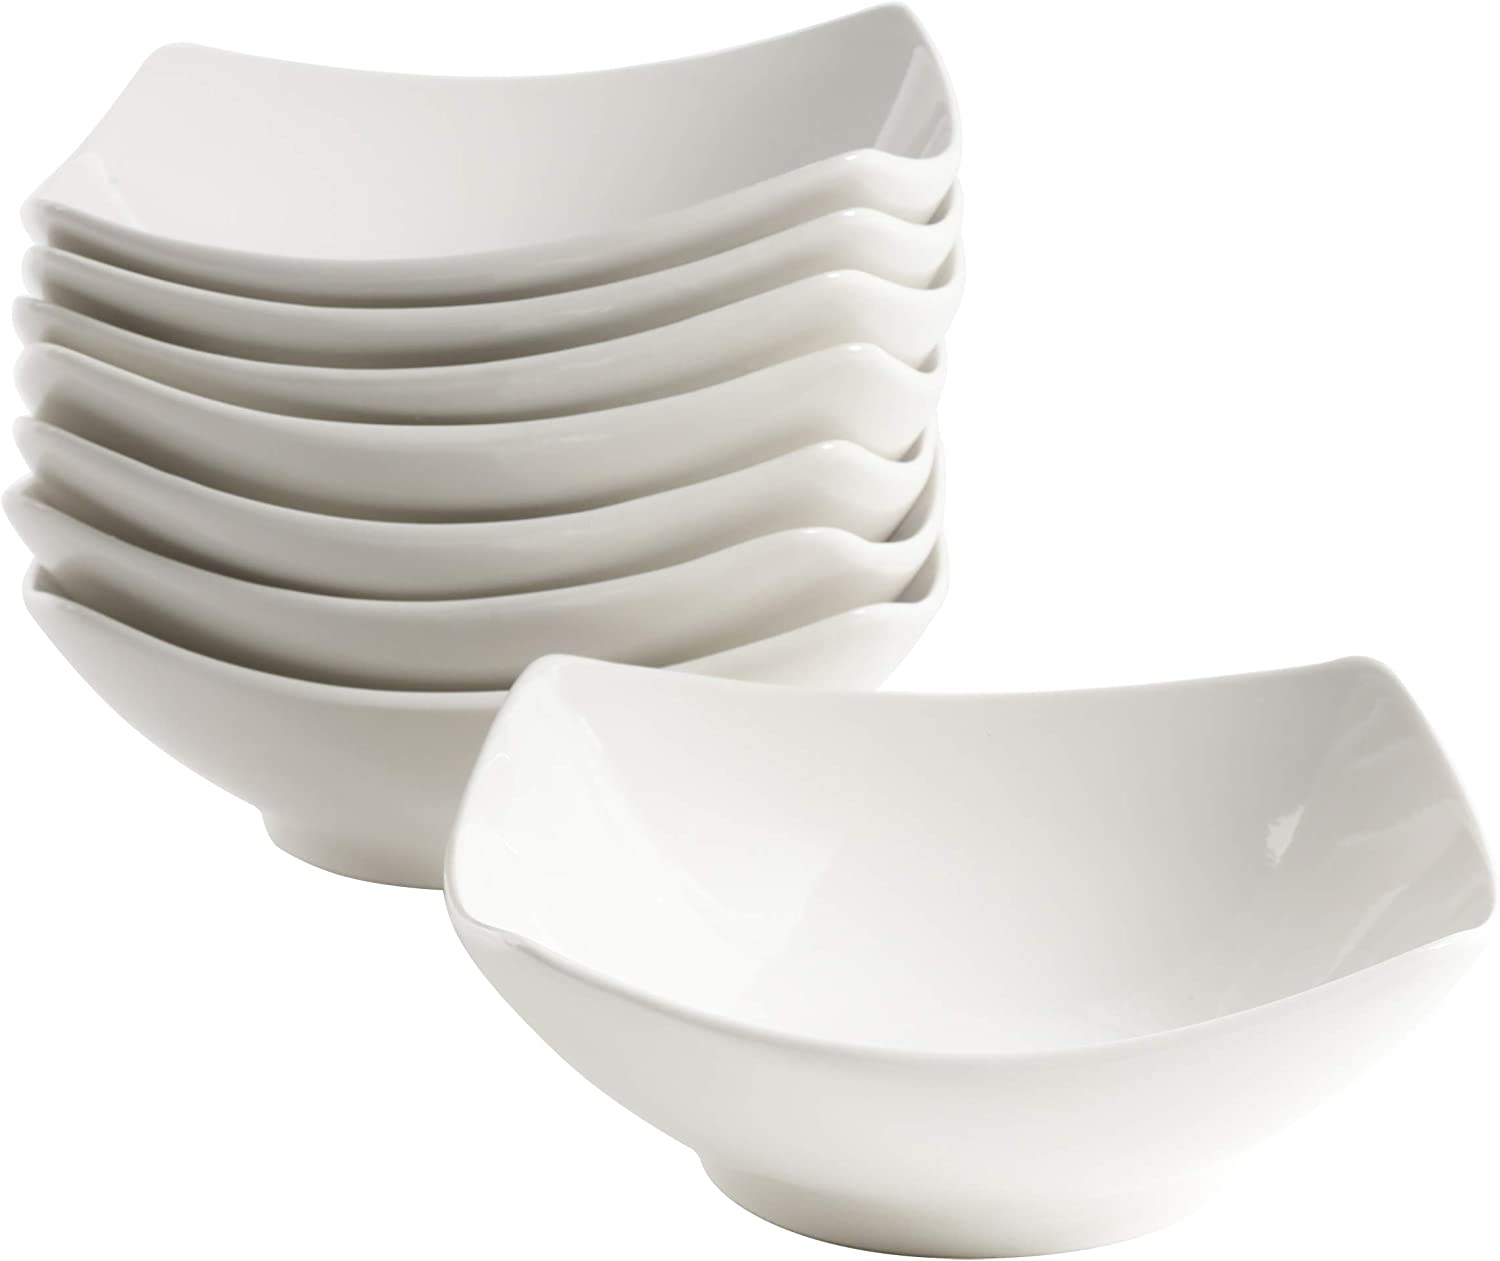 Gibson Home Zen Buffet Dinnerware Set, 8-Piece Bowl, White